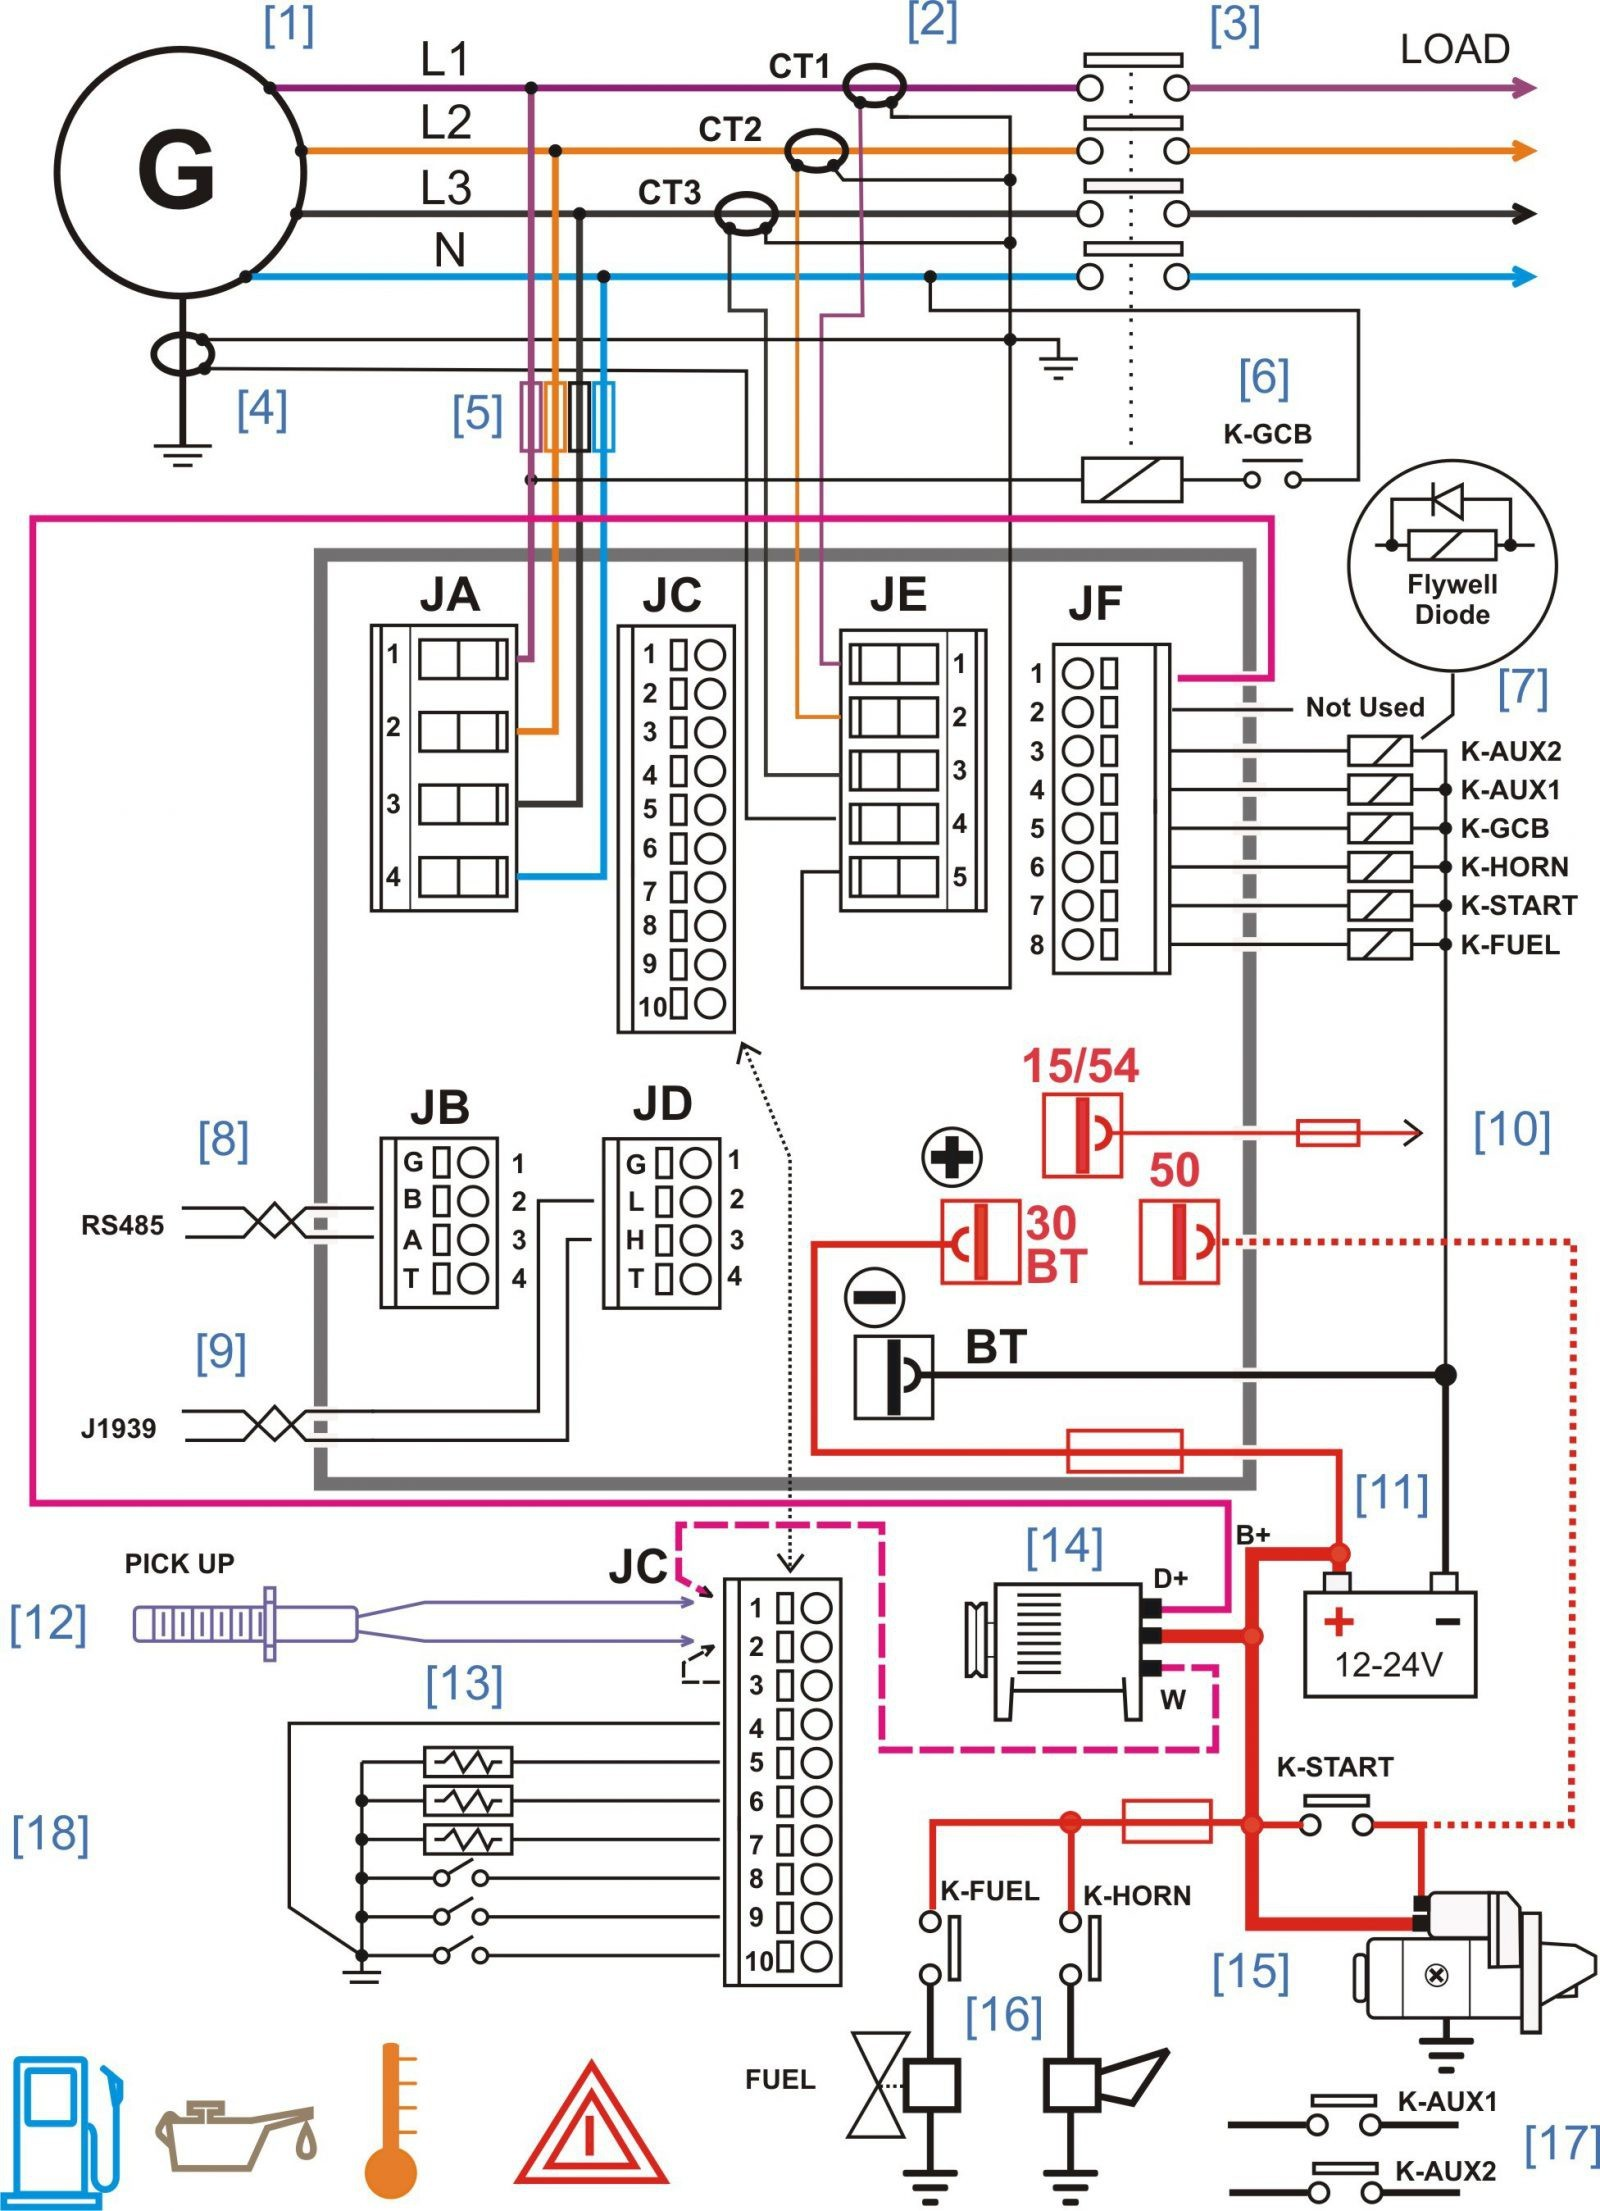 Car Ignition Diagram Lovely Car Stereo Wiring Diagram Diagram Of Car Ignition Diagram